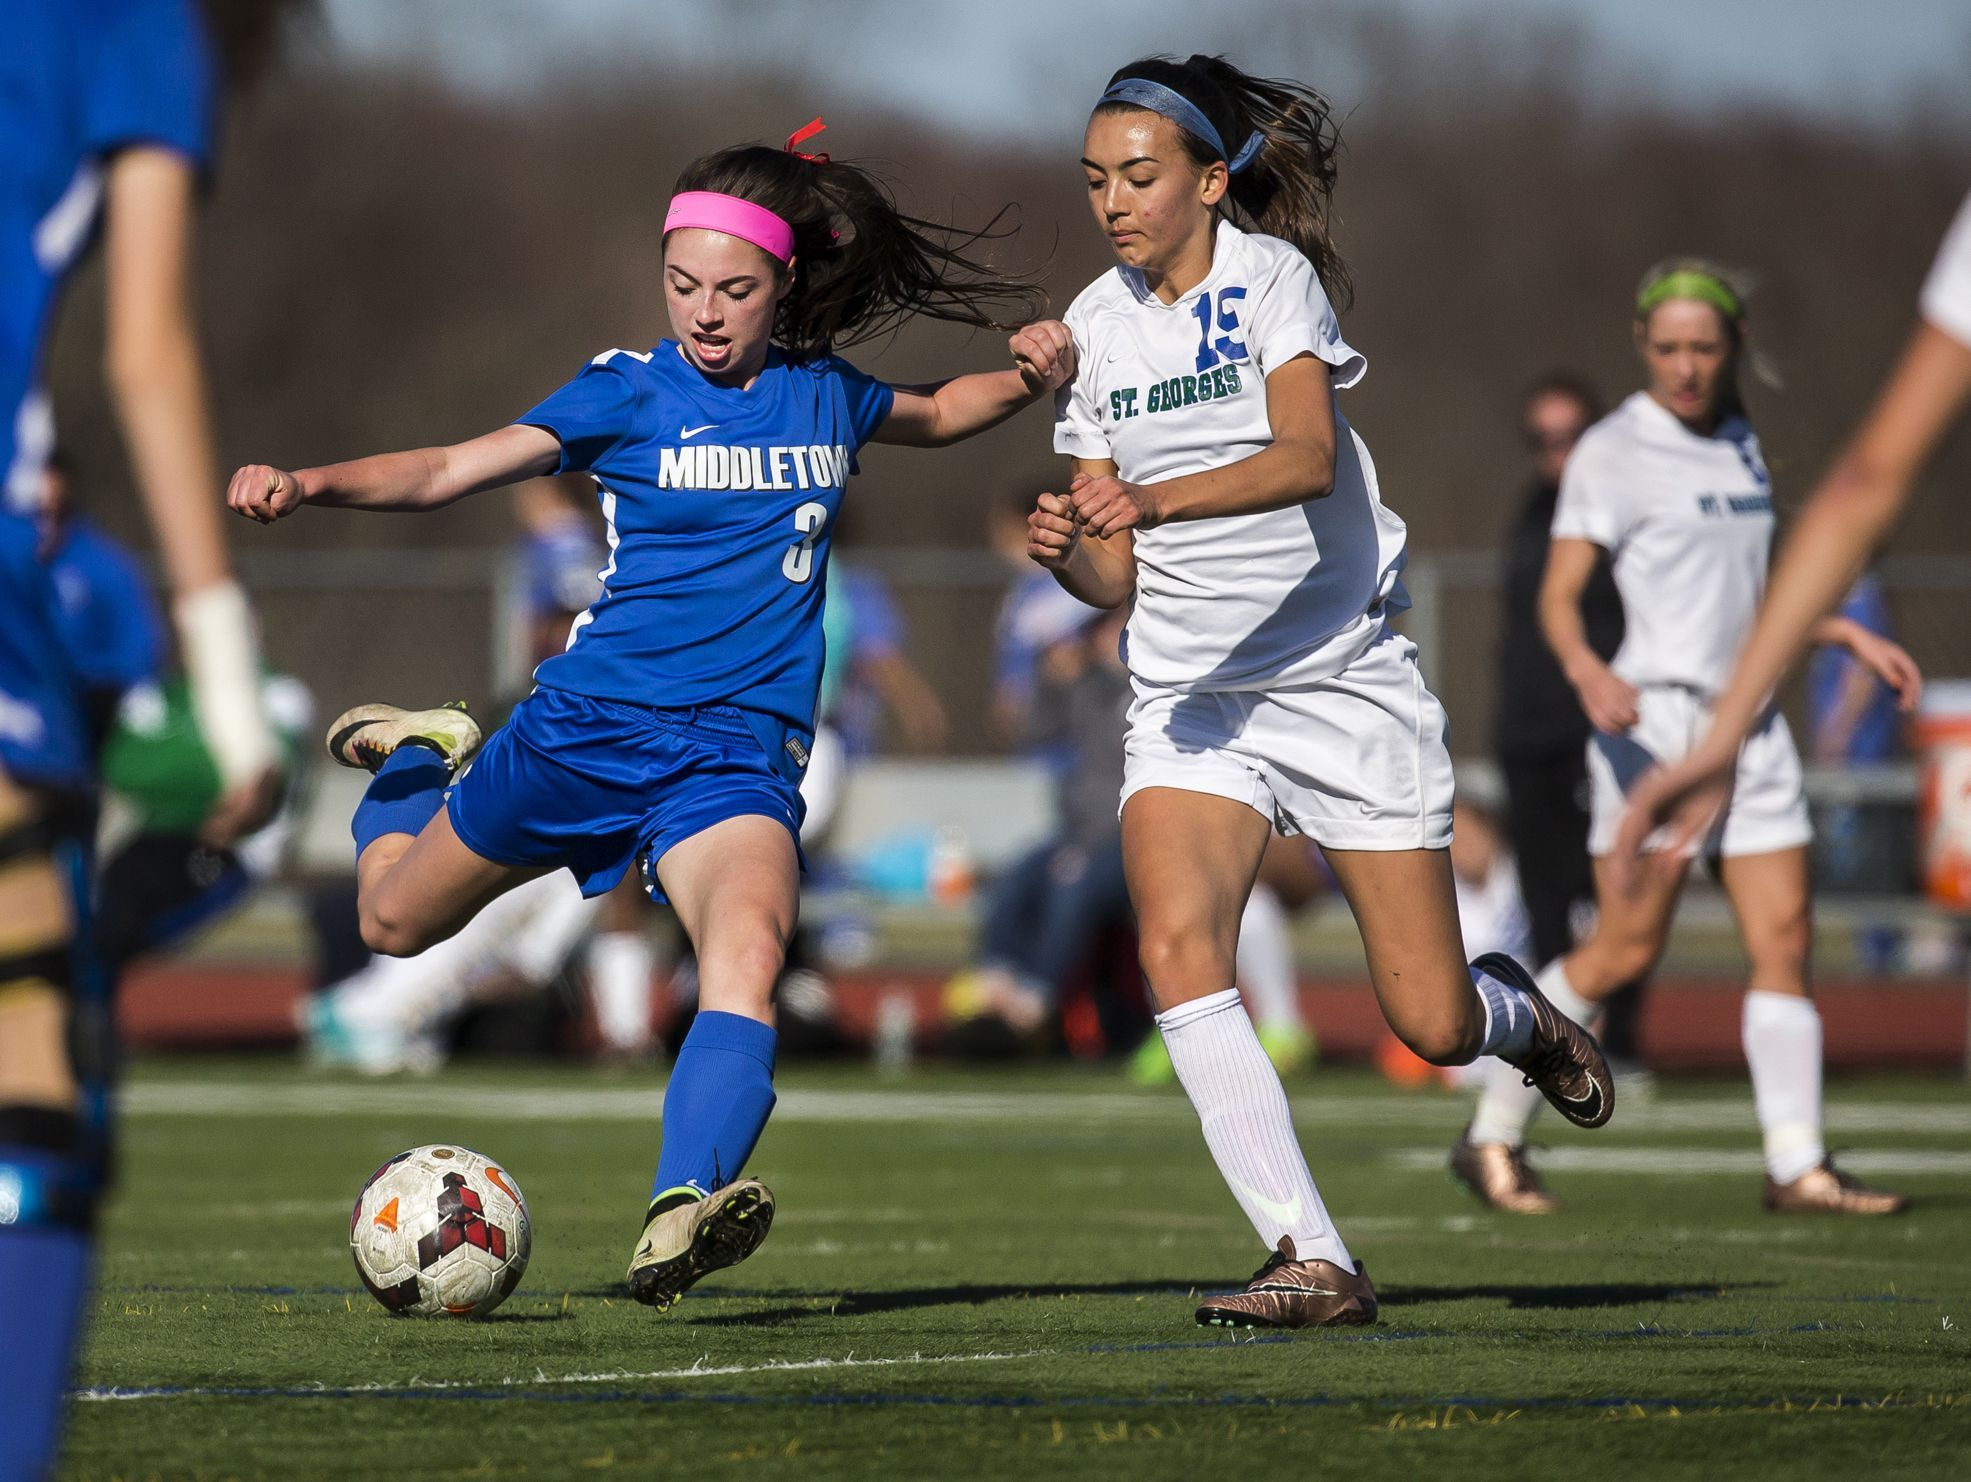 Middletown's Rachel Finelli (No. 3) puts a shoots and scores a goal past the defense of St. Georges' Hailee Steward (No. 15) in the second half of Middletown's 4-0 win over St. Georges at St. Georges Technical High School in Middletown on Wednesday afternoon.